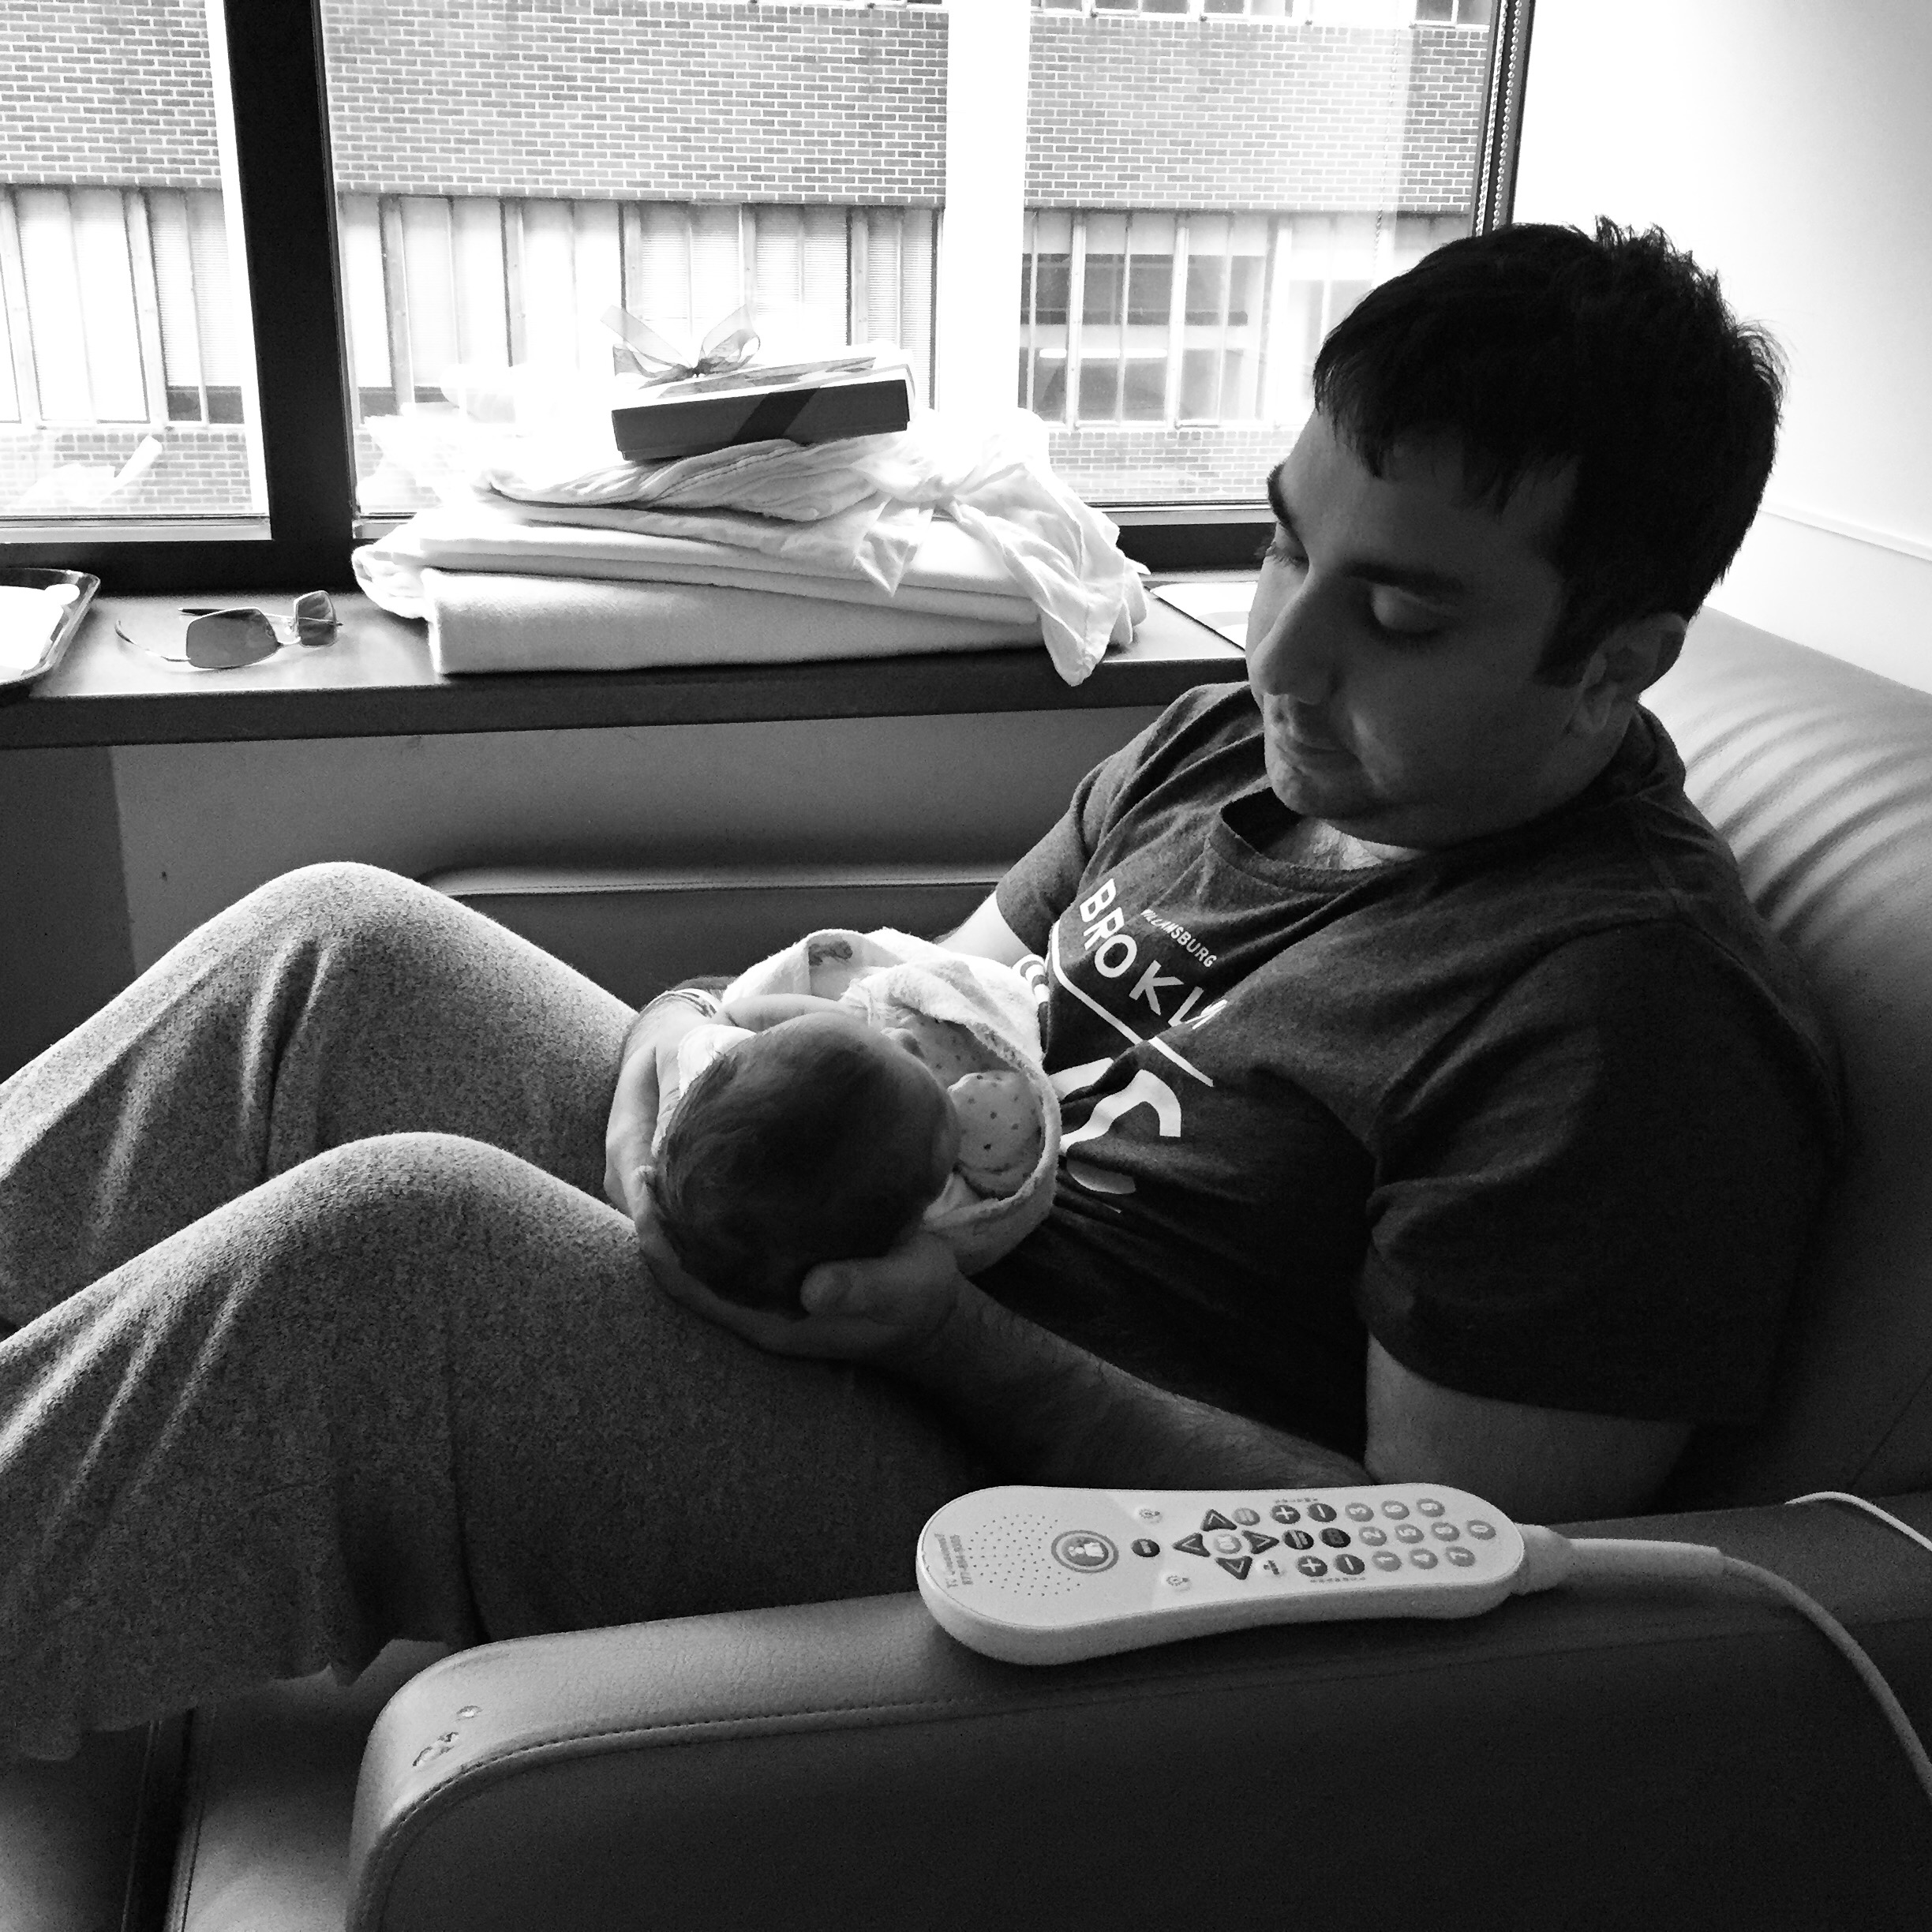 Two days old, just catching up on life with Daddy.